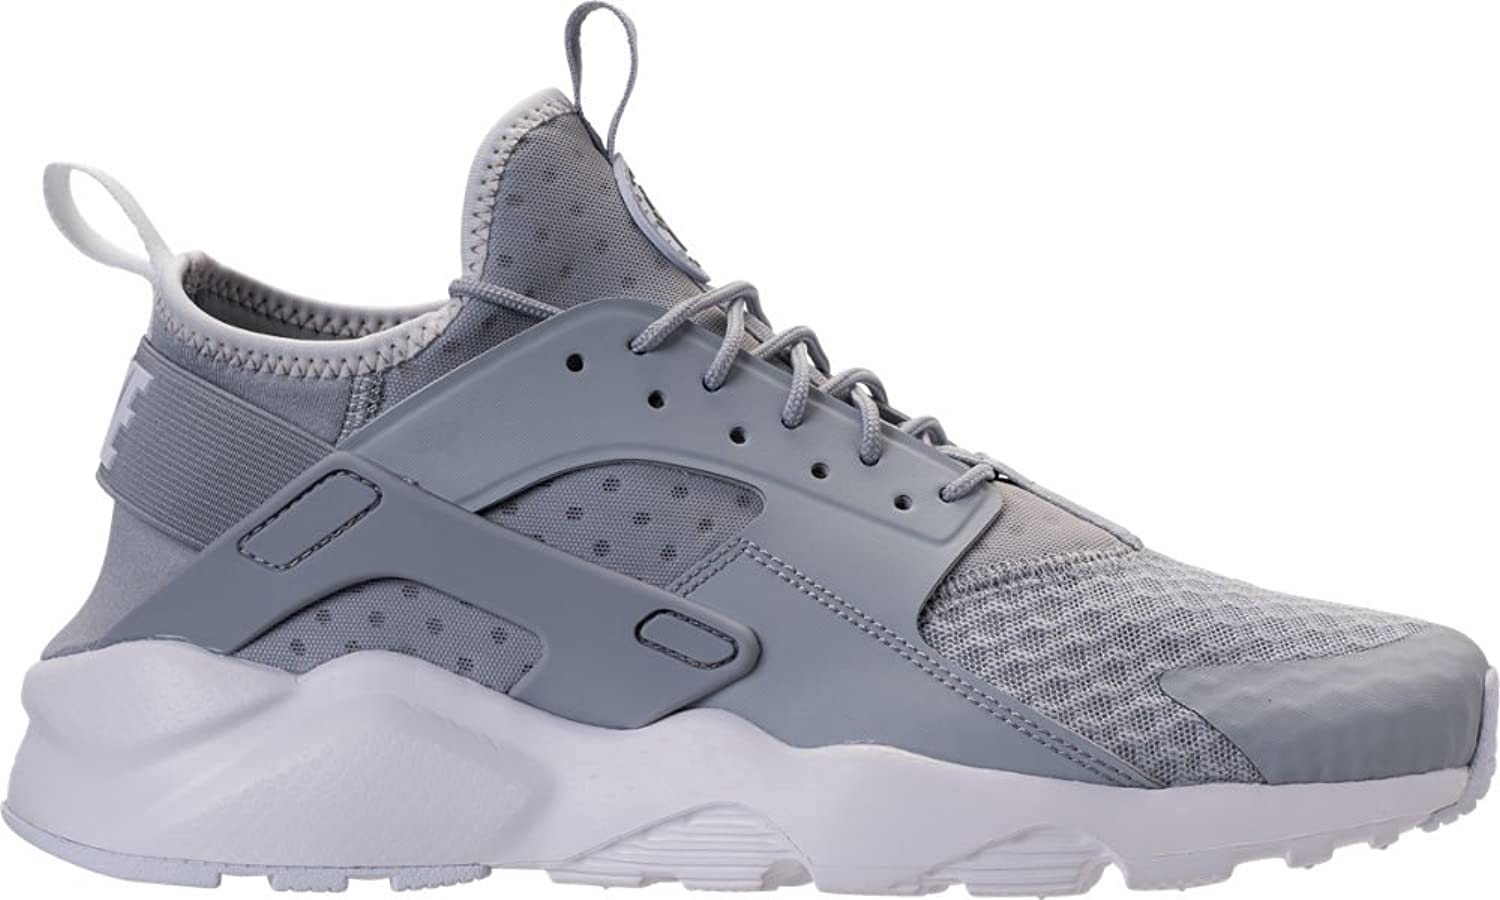 ナイキ シューズ スニーカー Men's Nike Air Huarache Run Ultra Casual Wolf Grey/ 1z5 [並行輸入品] B0757399Z5